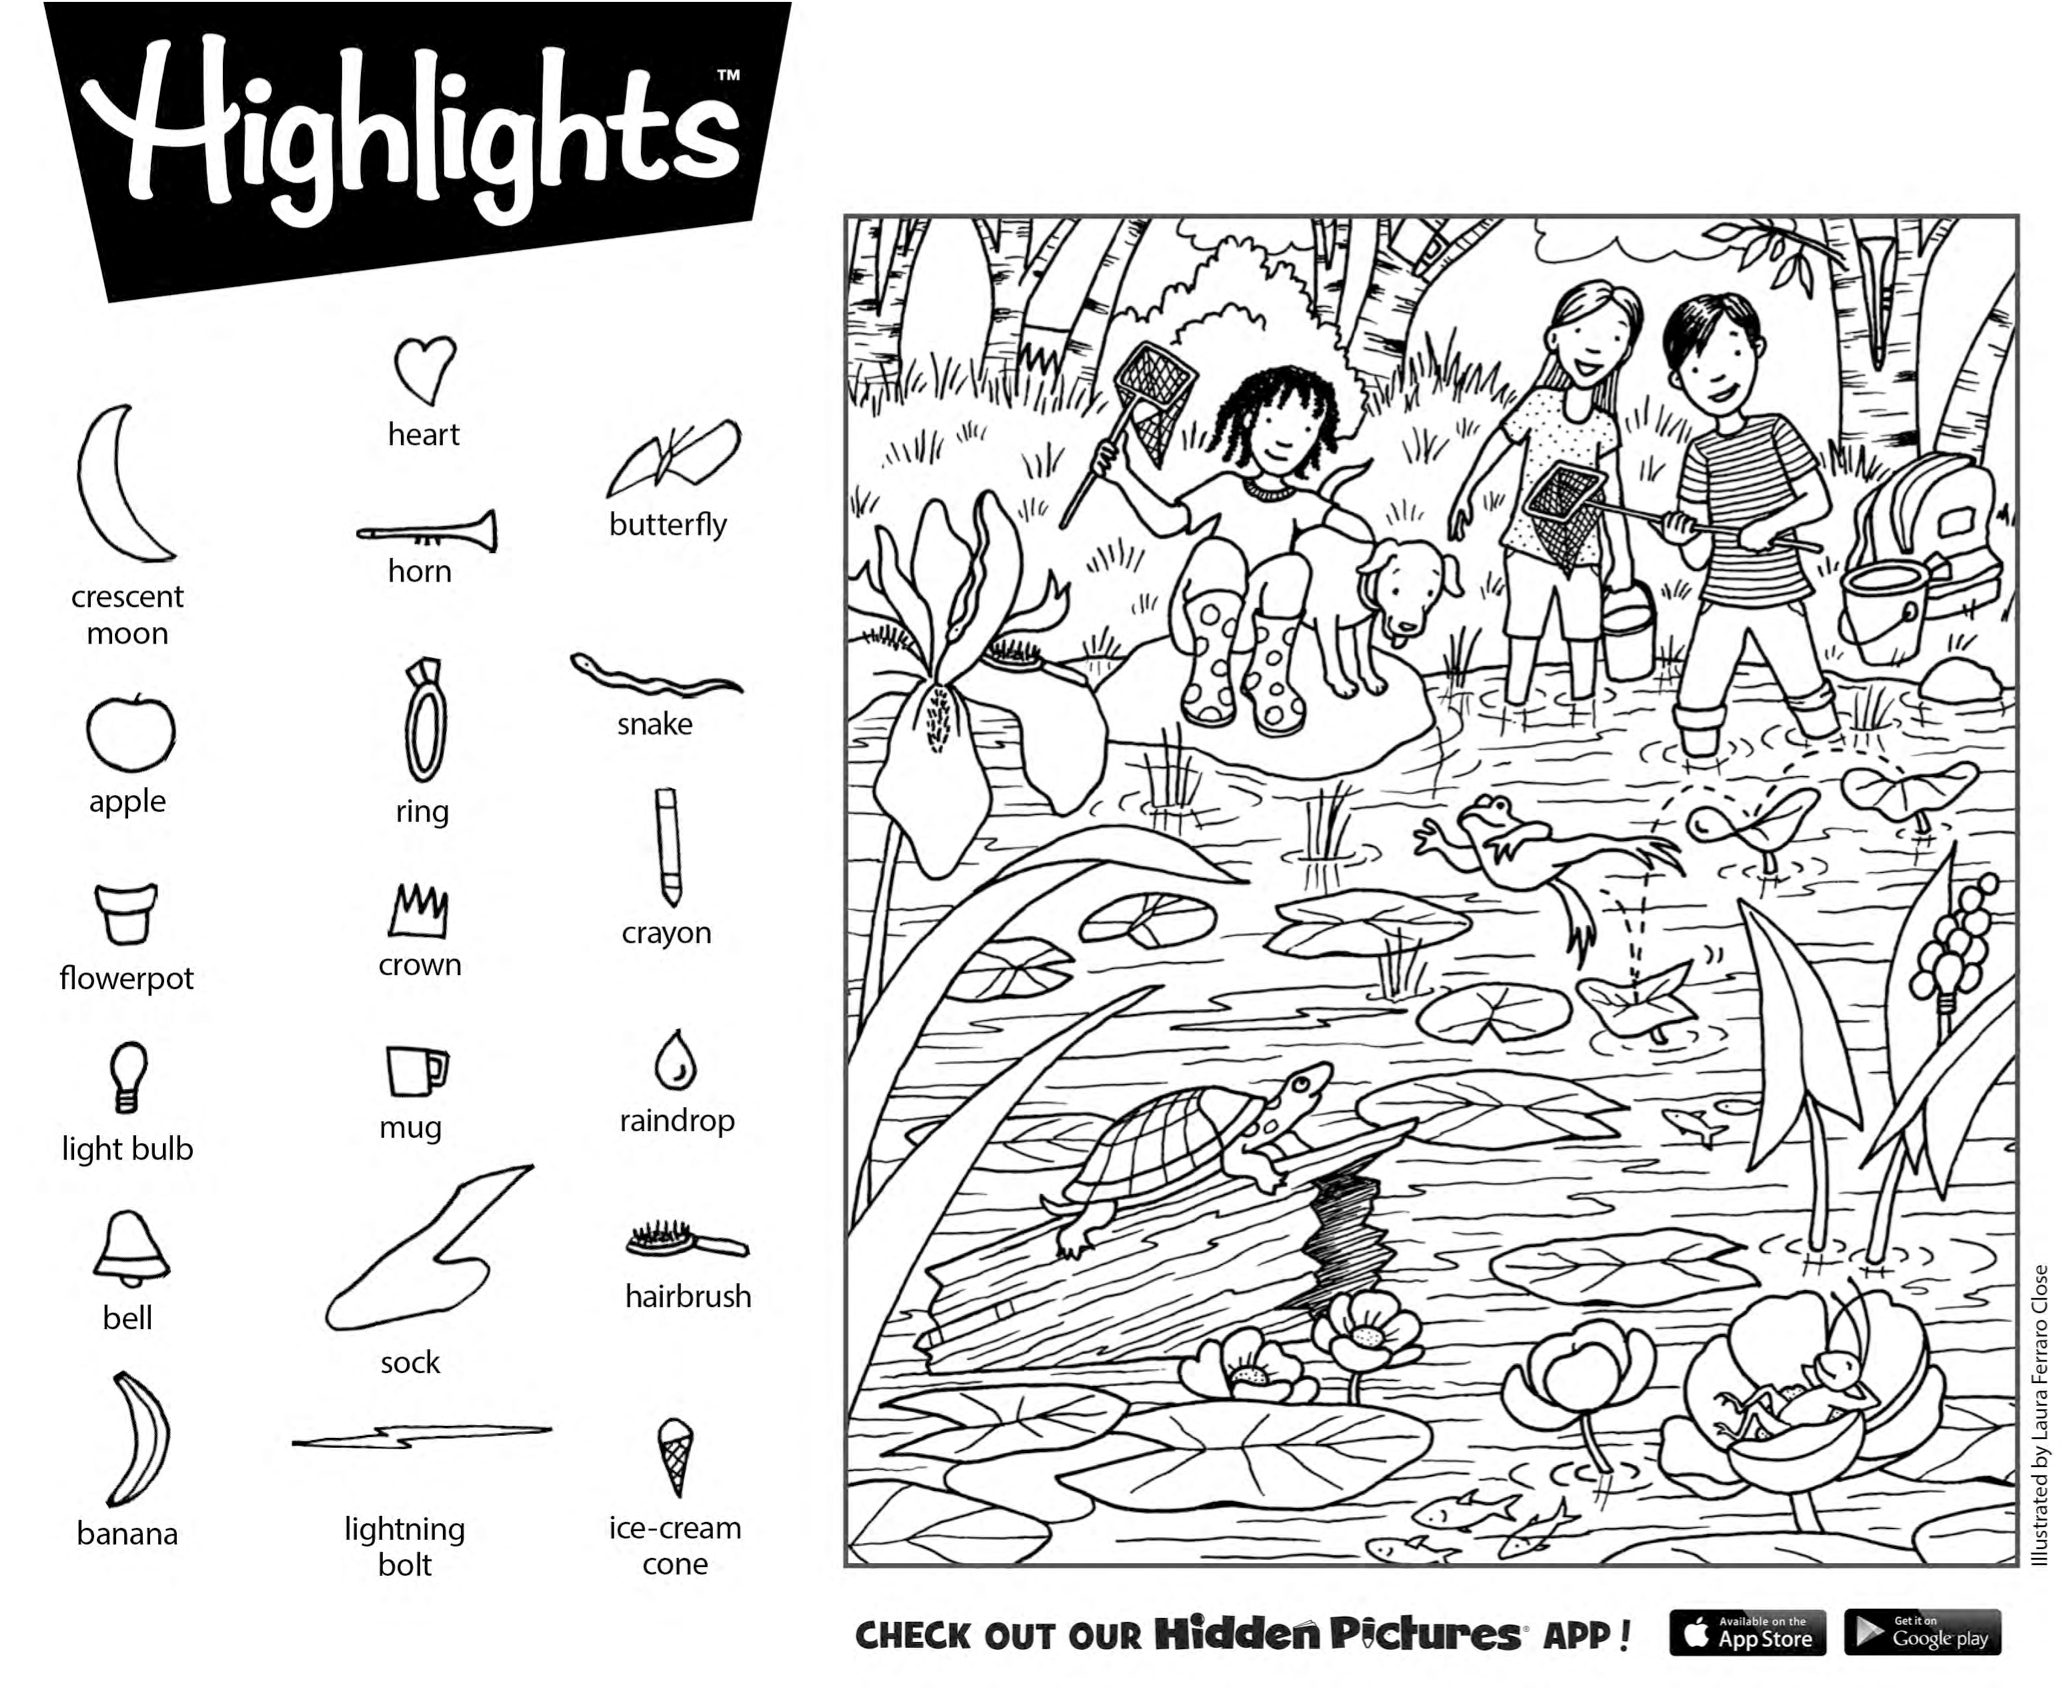 Download This Free Printable Hidden Pictures Puzzle From Highlights - Free Printable Hidden Pictures For Kids